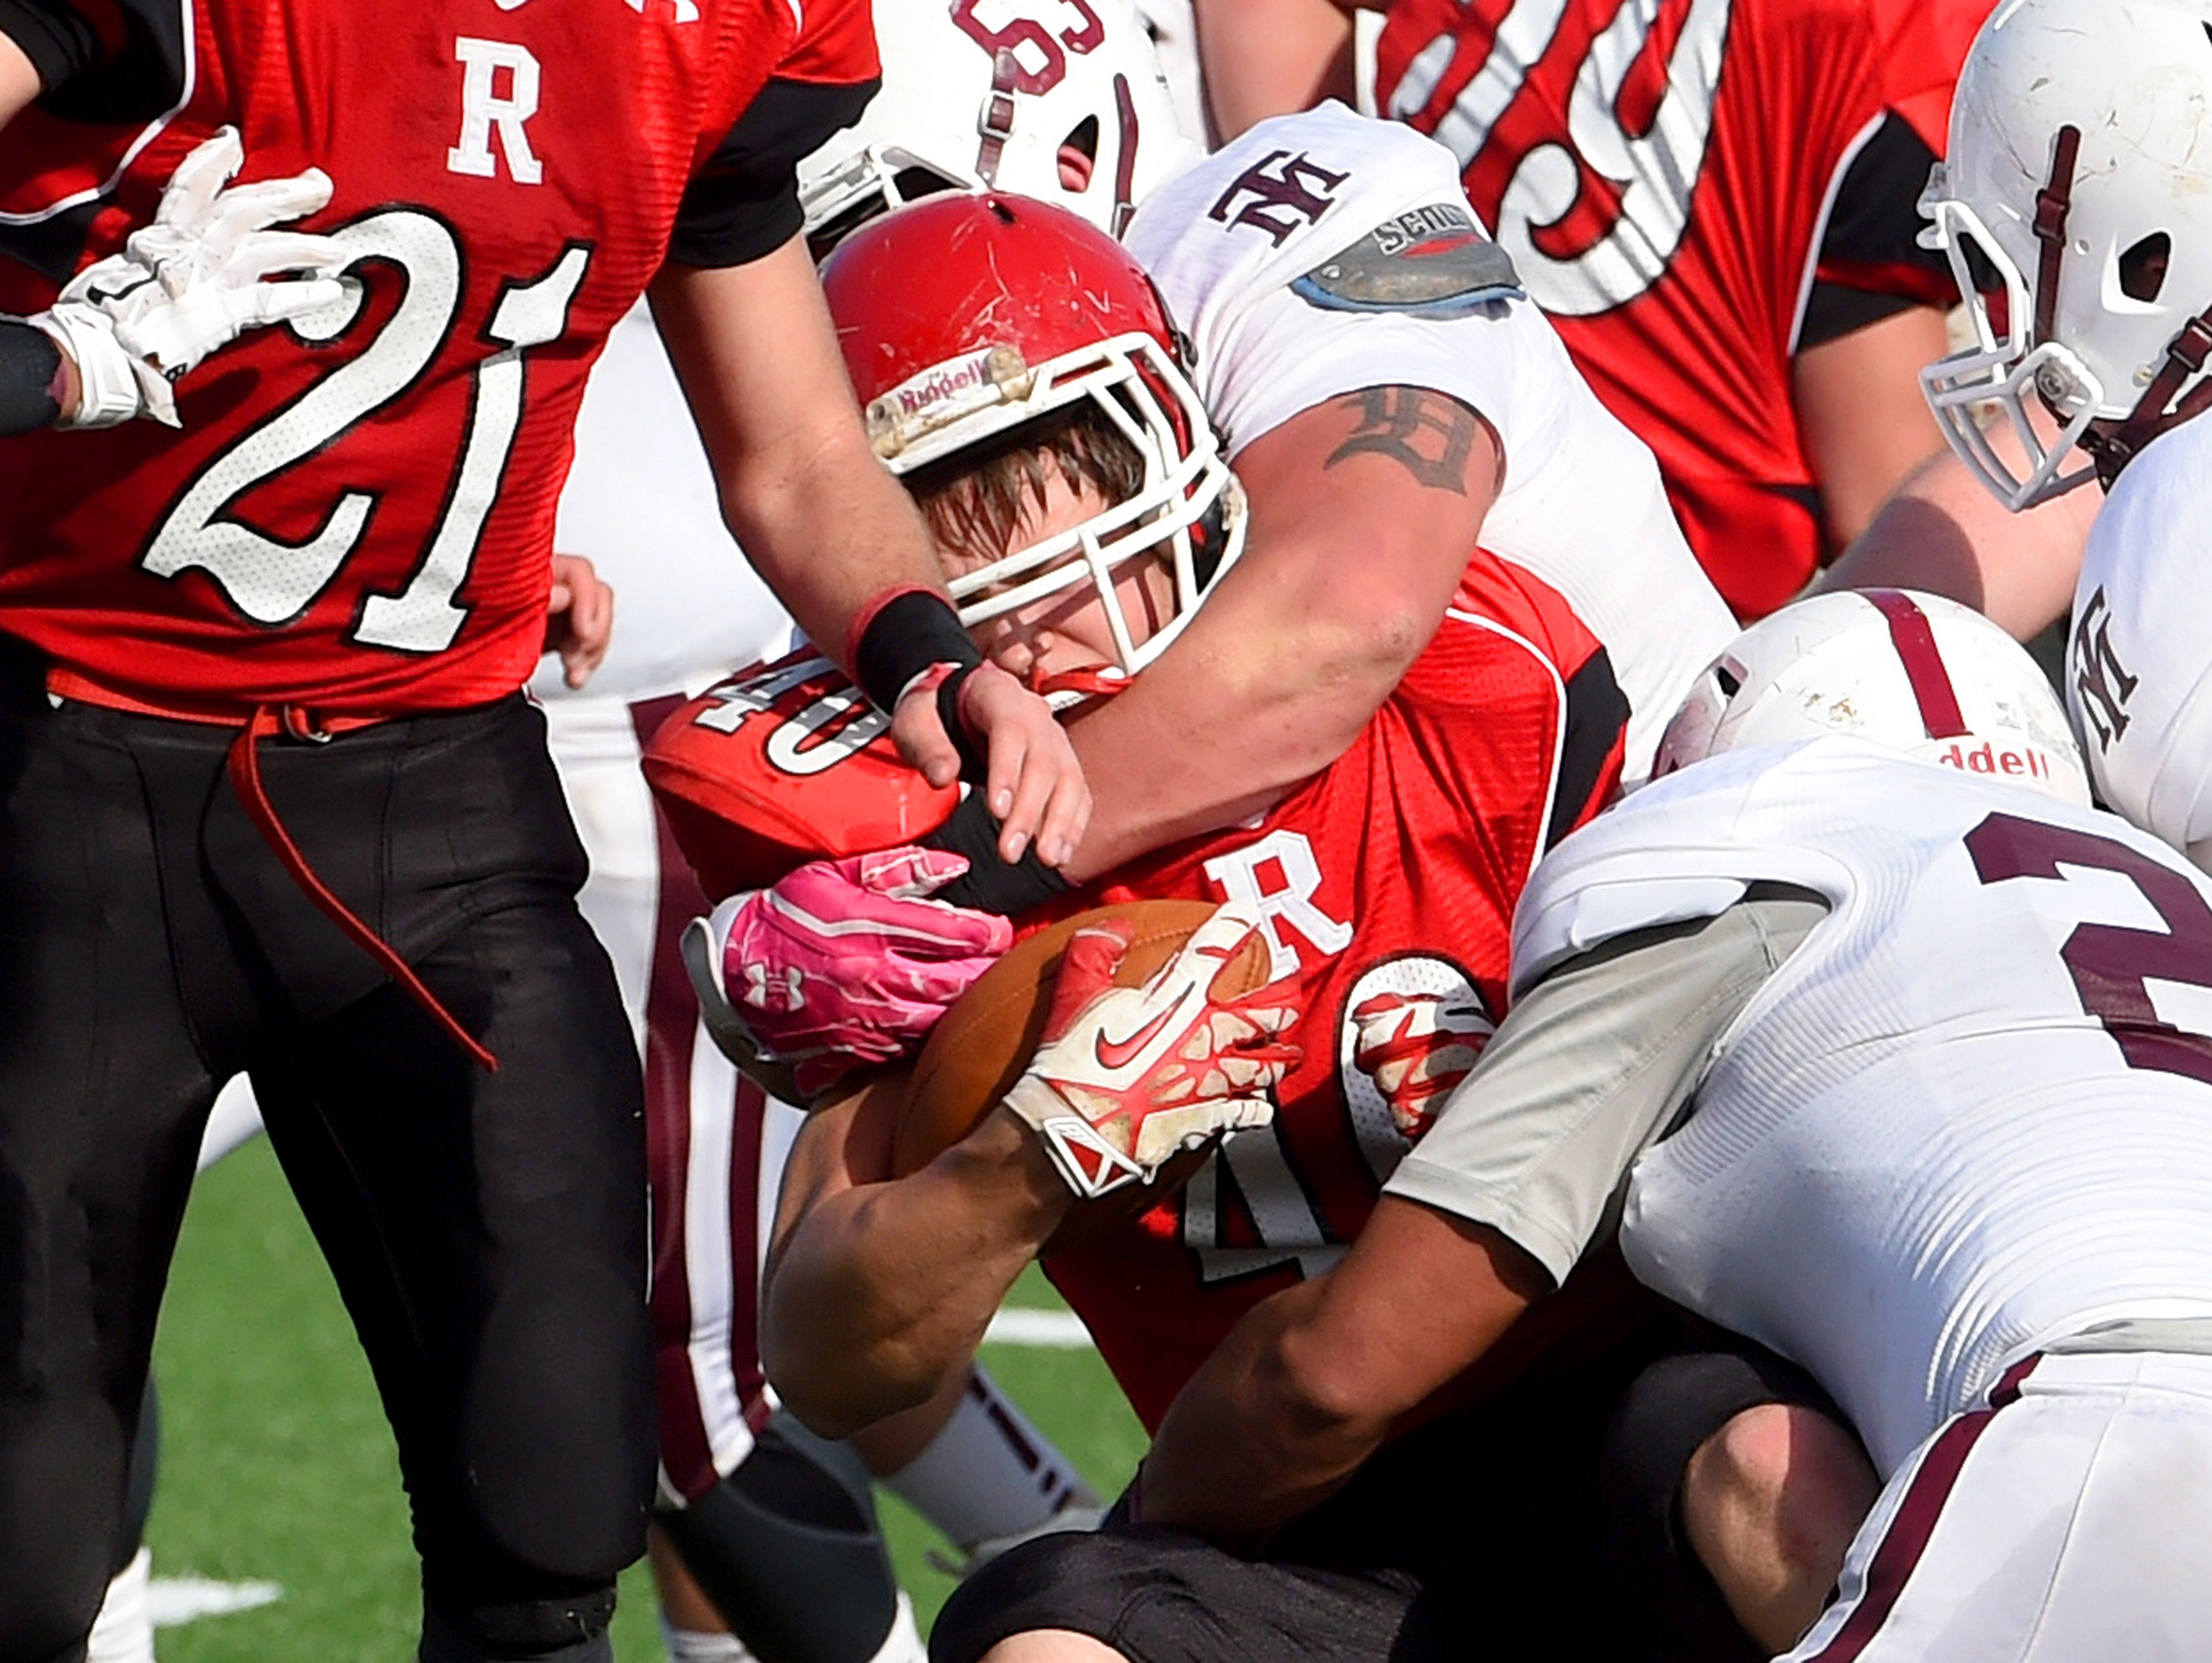 Riverheads' Harrison Schaefer is wrapped up by the Galax defense and brought down during the Group 1A football championship in Salem on Saturday, Dec. 12, 2015. Riverheads lost to Galax 7-6.